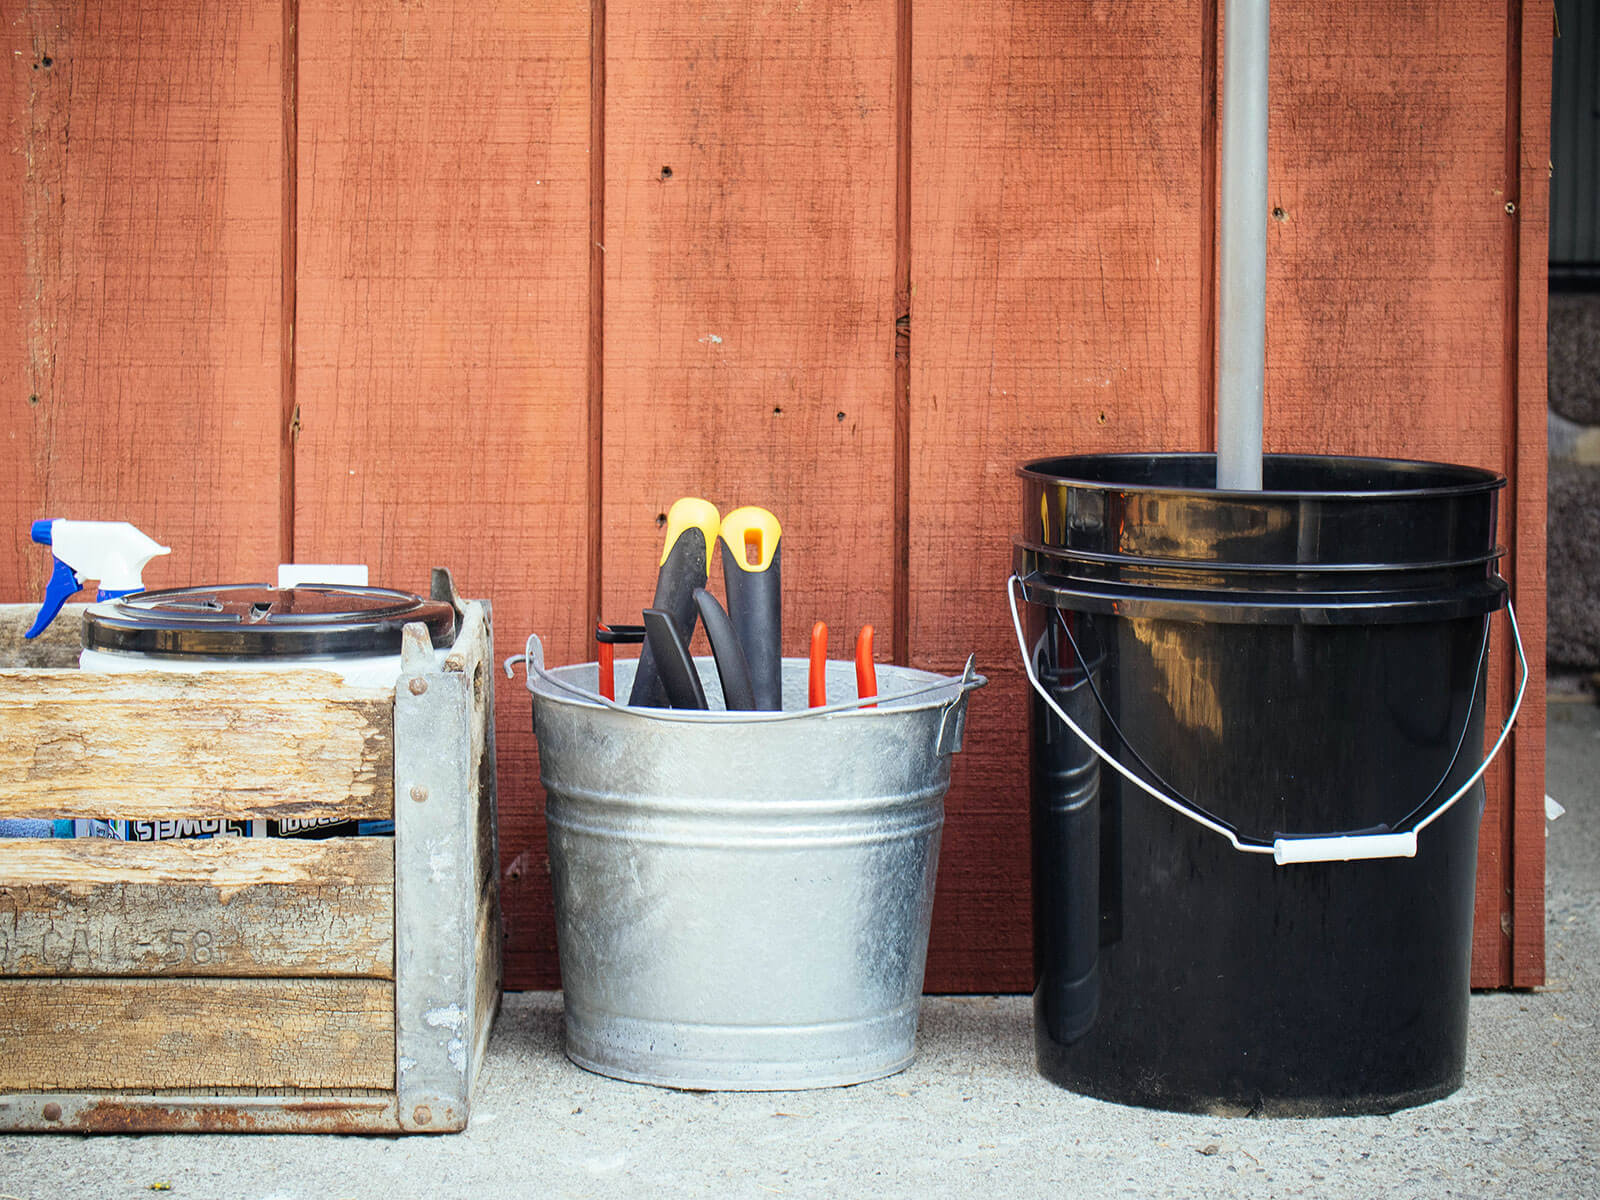 Crate of cleaning supplies and two buckets filled with tools, set against a shed wall